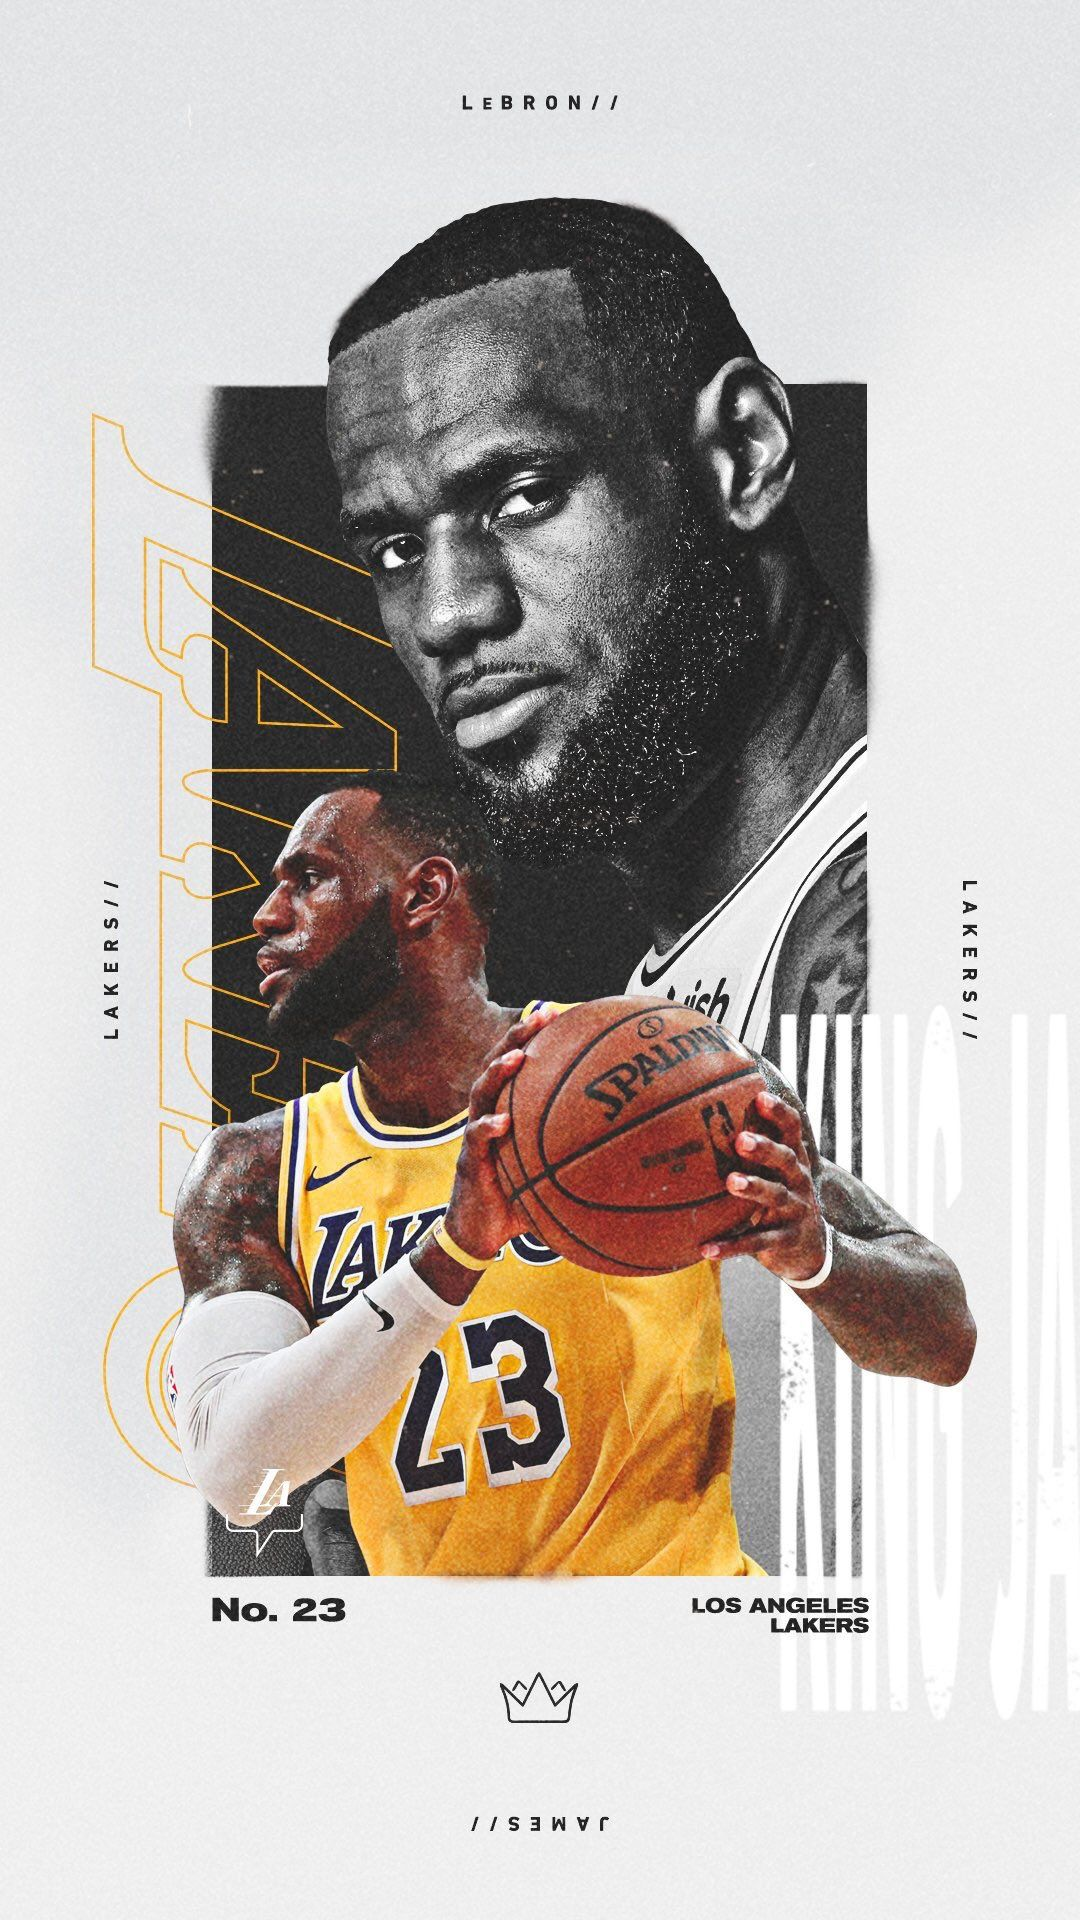 Trenches On Sports Graphic Design Lebron James Wallpapers Sport Poster Design